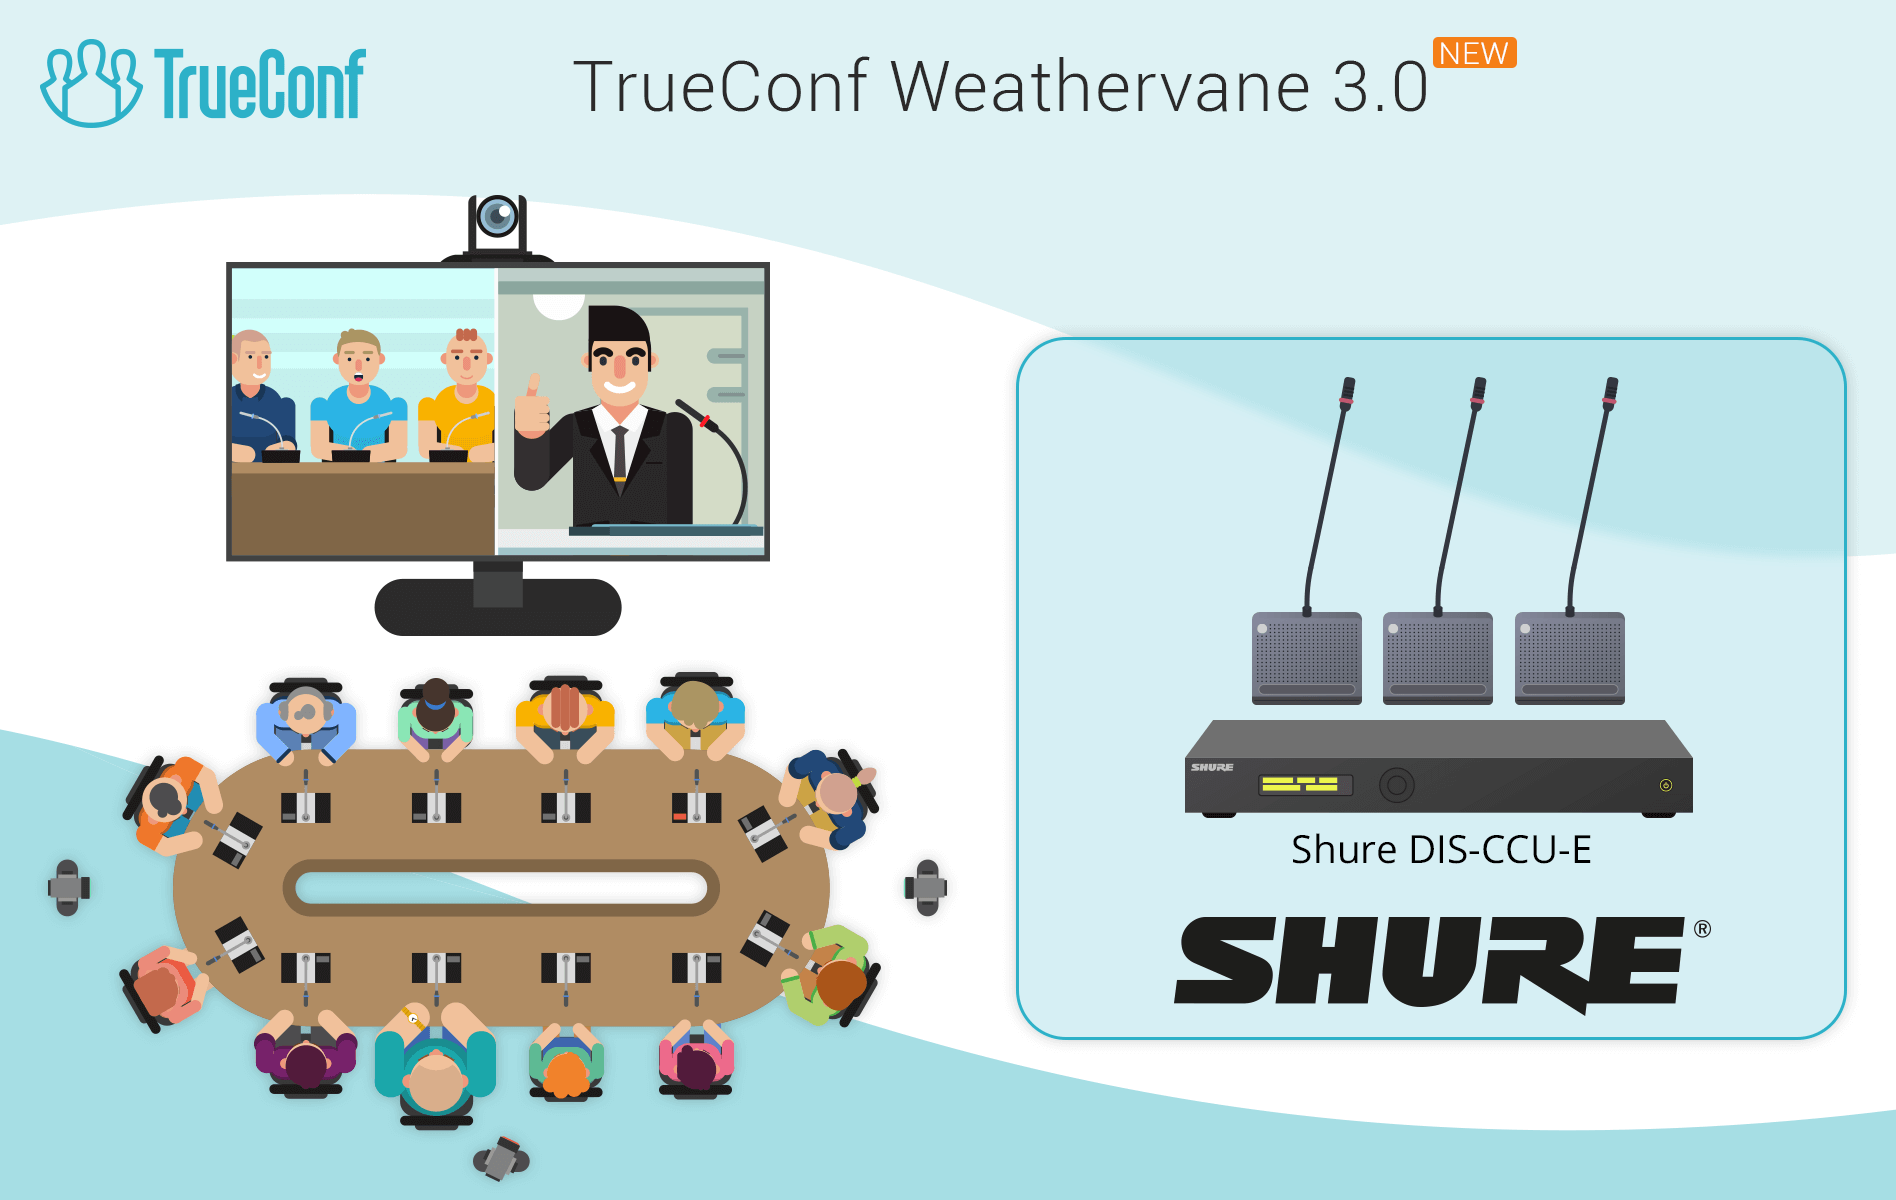 TrueConf Weathervane 3.0 - support for Shure